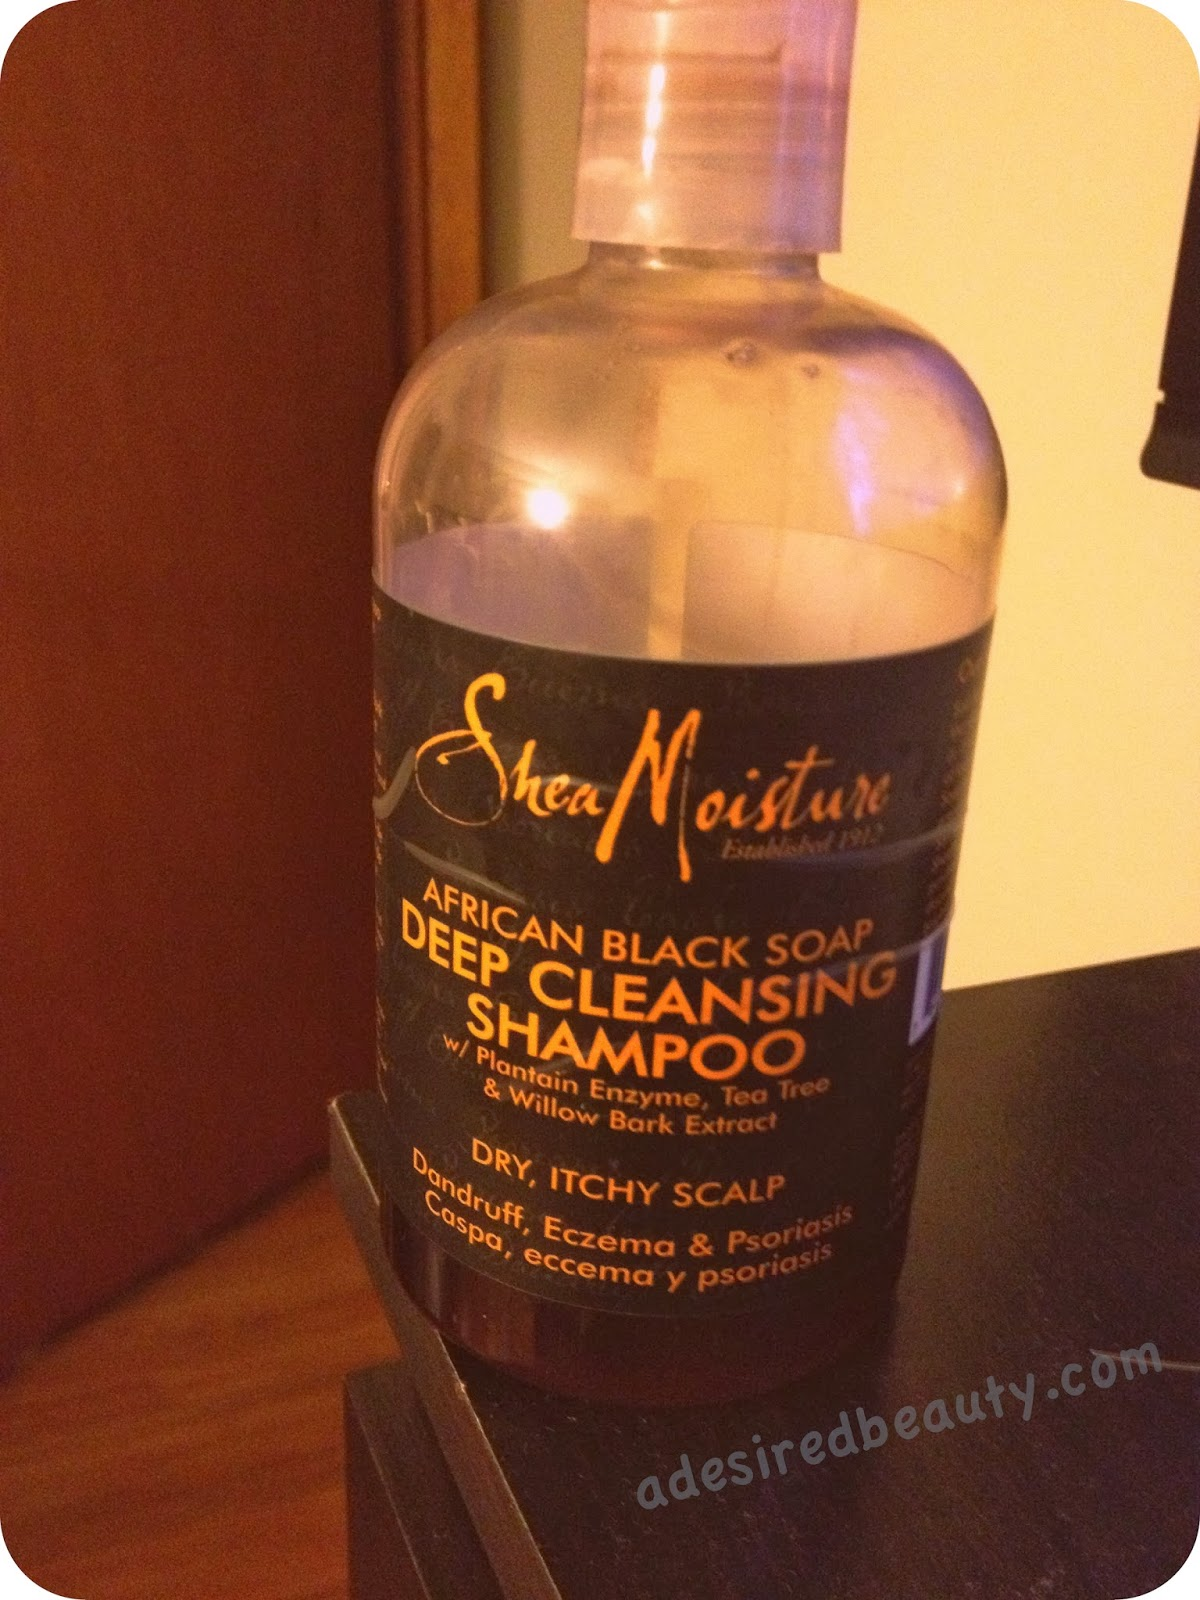 African black soap reviews